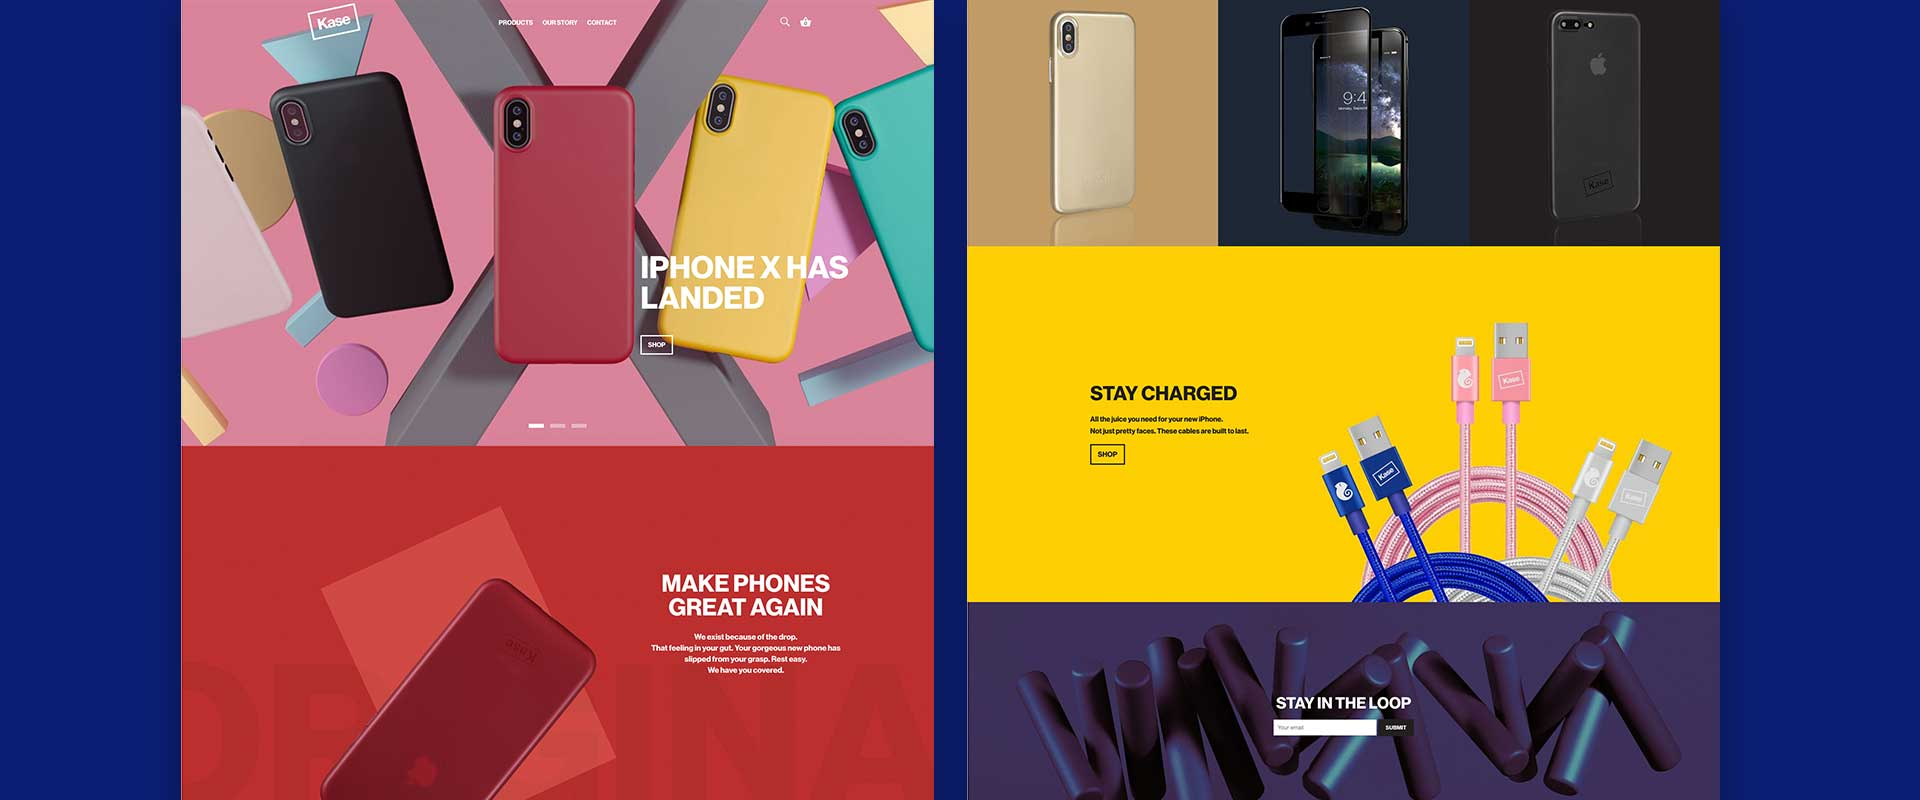 Brand Strategy, Brand Identity Design, Art Direction & Copywriting project for Kase consumer products, Sydney, Australia, image 08